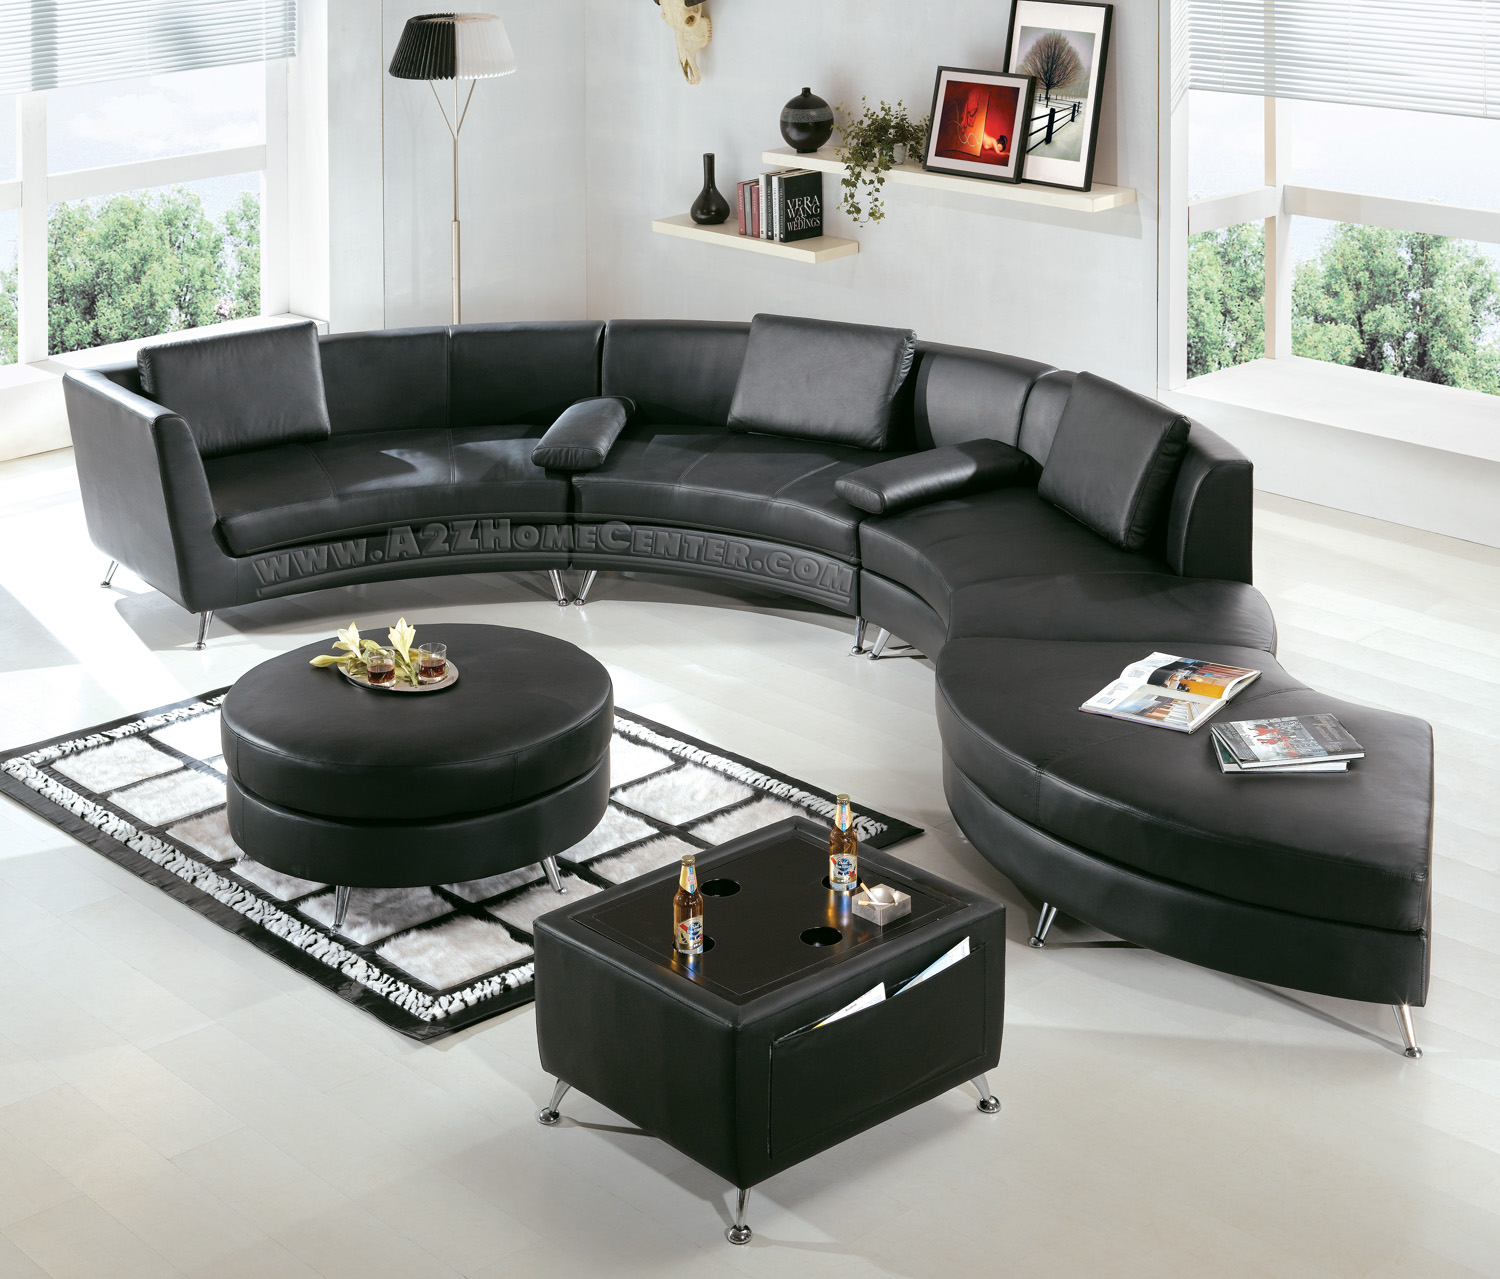 Awesome Modern Contemporary Furniture For Living Room - Contemporary living room furniture